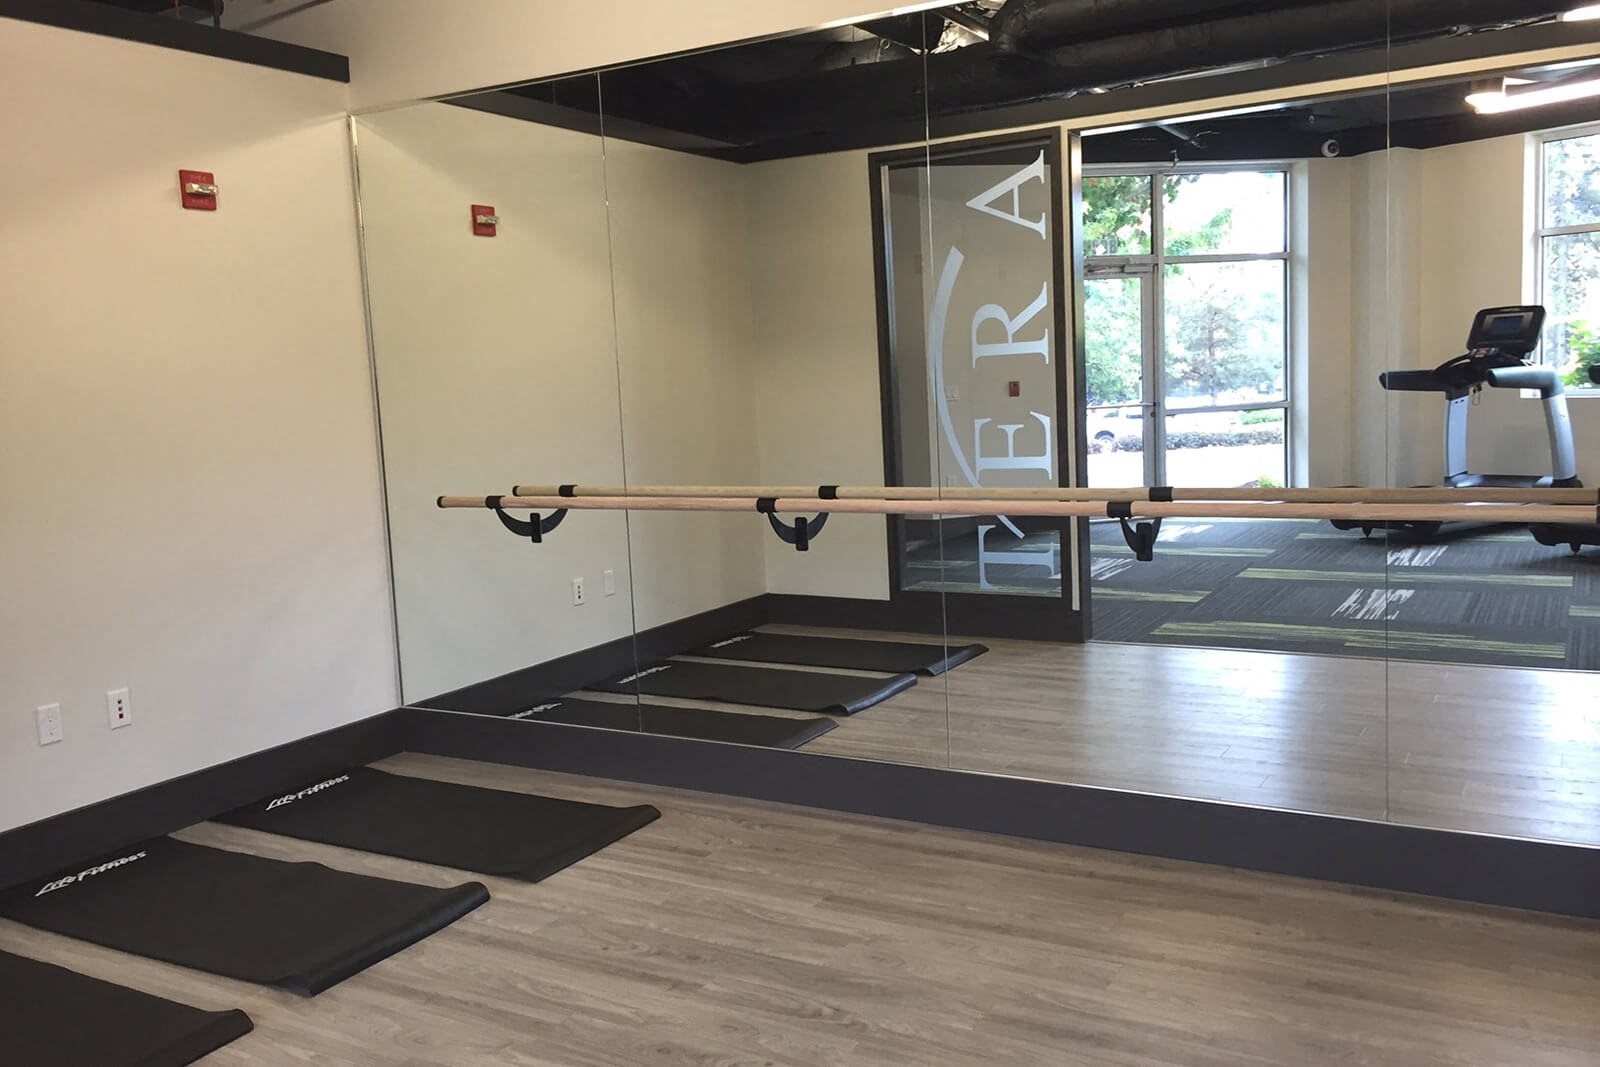 Yoga Stretching Area at Tera Apartments, Kirkland, Washington